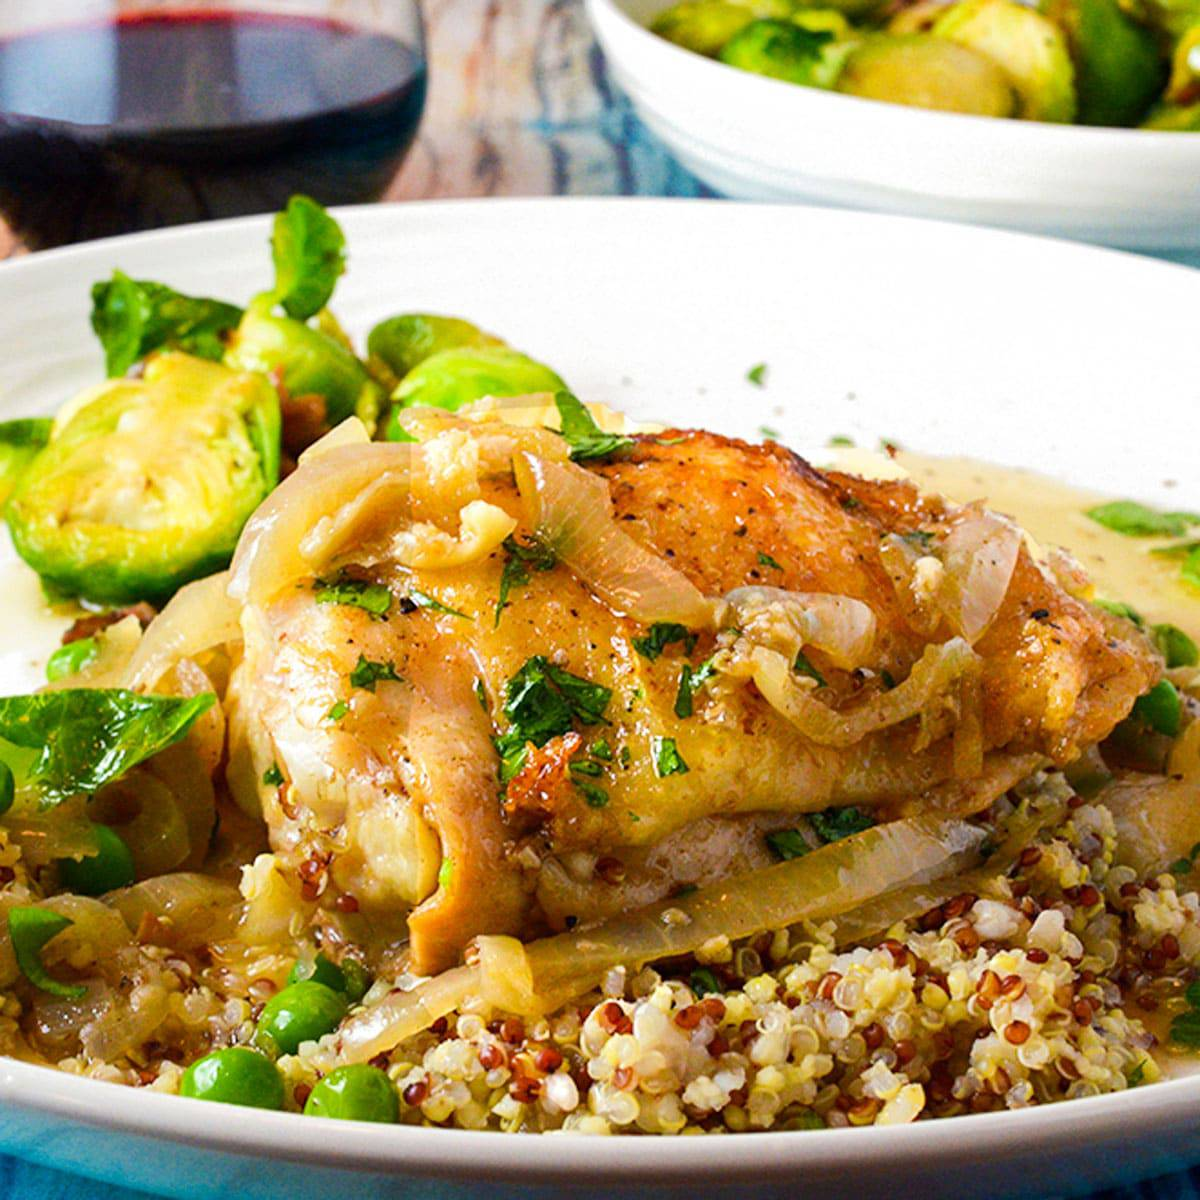 Seared chicken thigh on a serving plate with quinoa and Brussels sprouts.